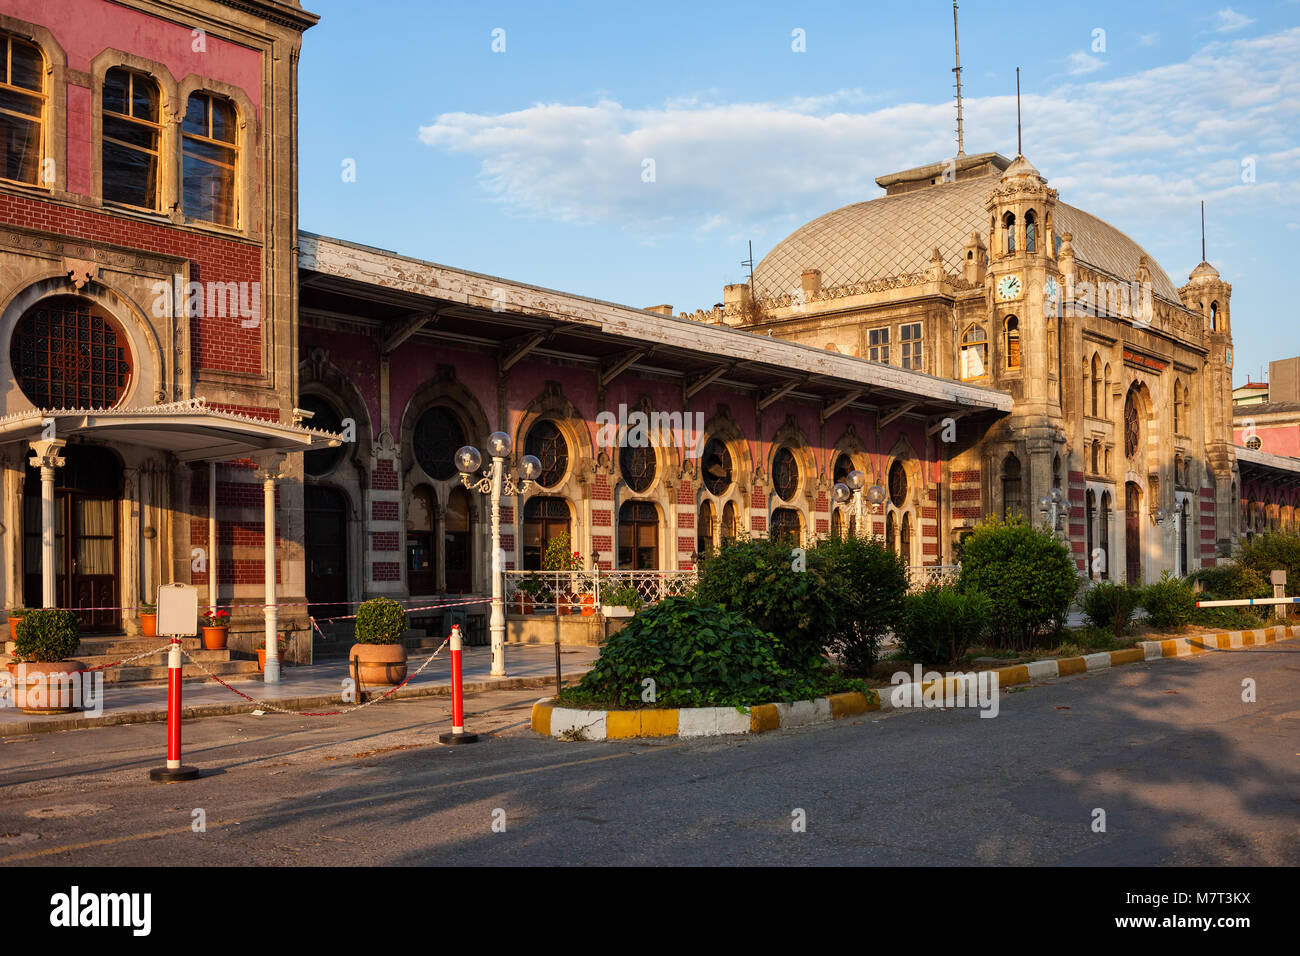 Turkey, Istanbul, Sirkeci railway station at sunset, last stop of the Orient Express, historic city landmark opened - Stock Image